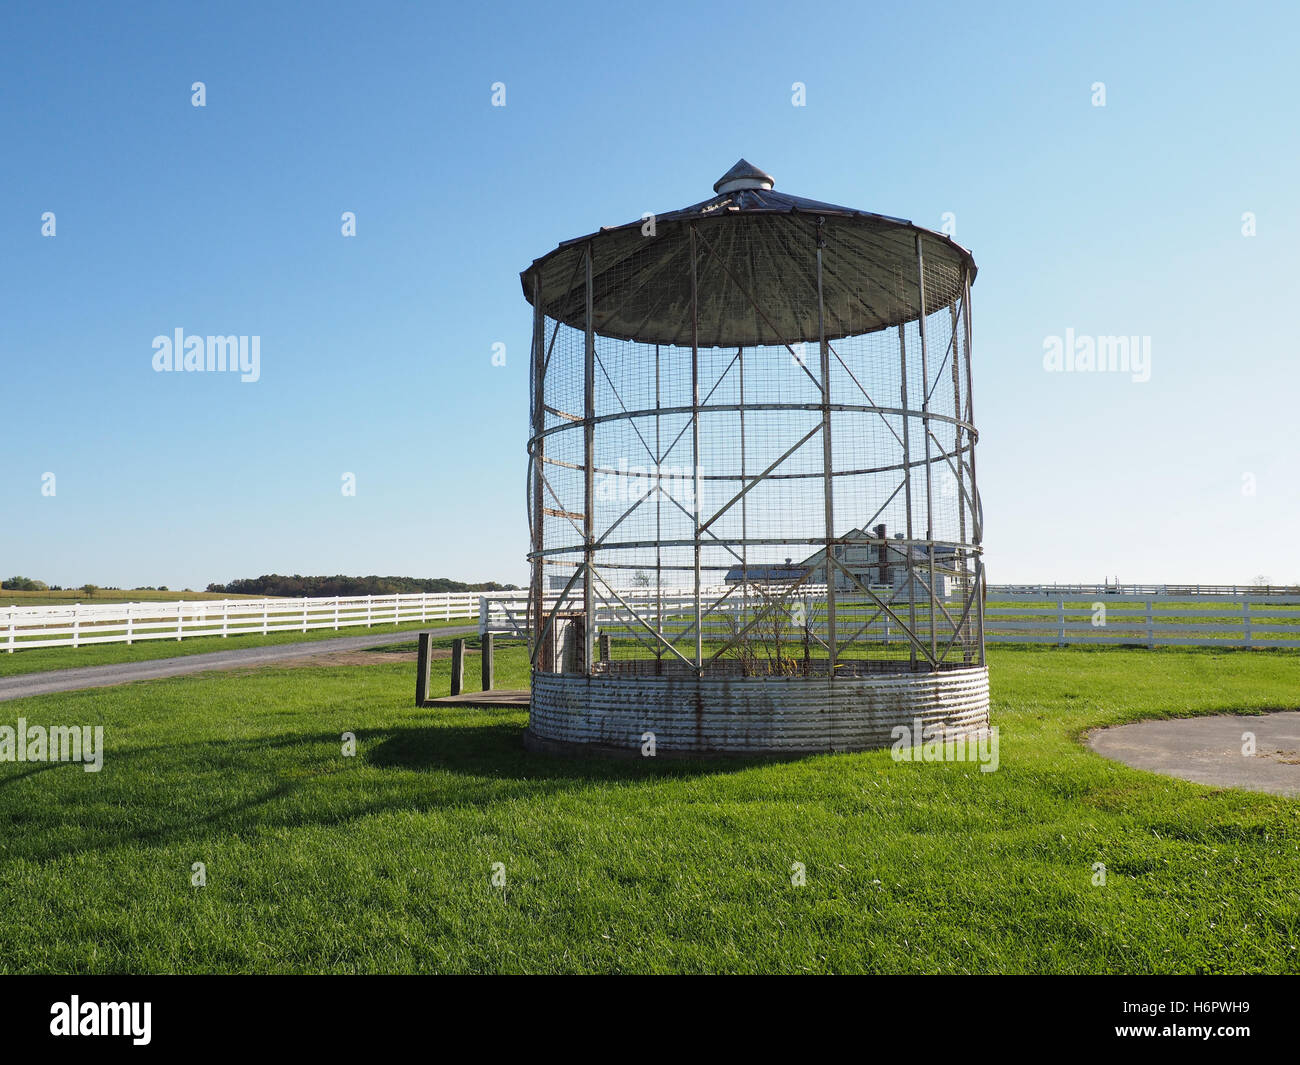 an old grain silo sits unused - Stock Image